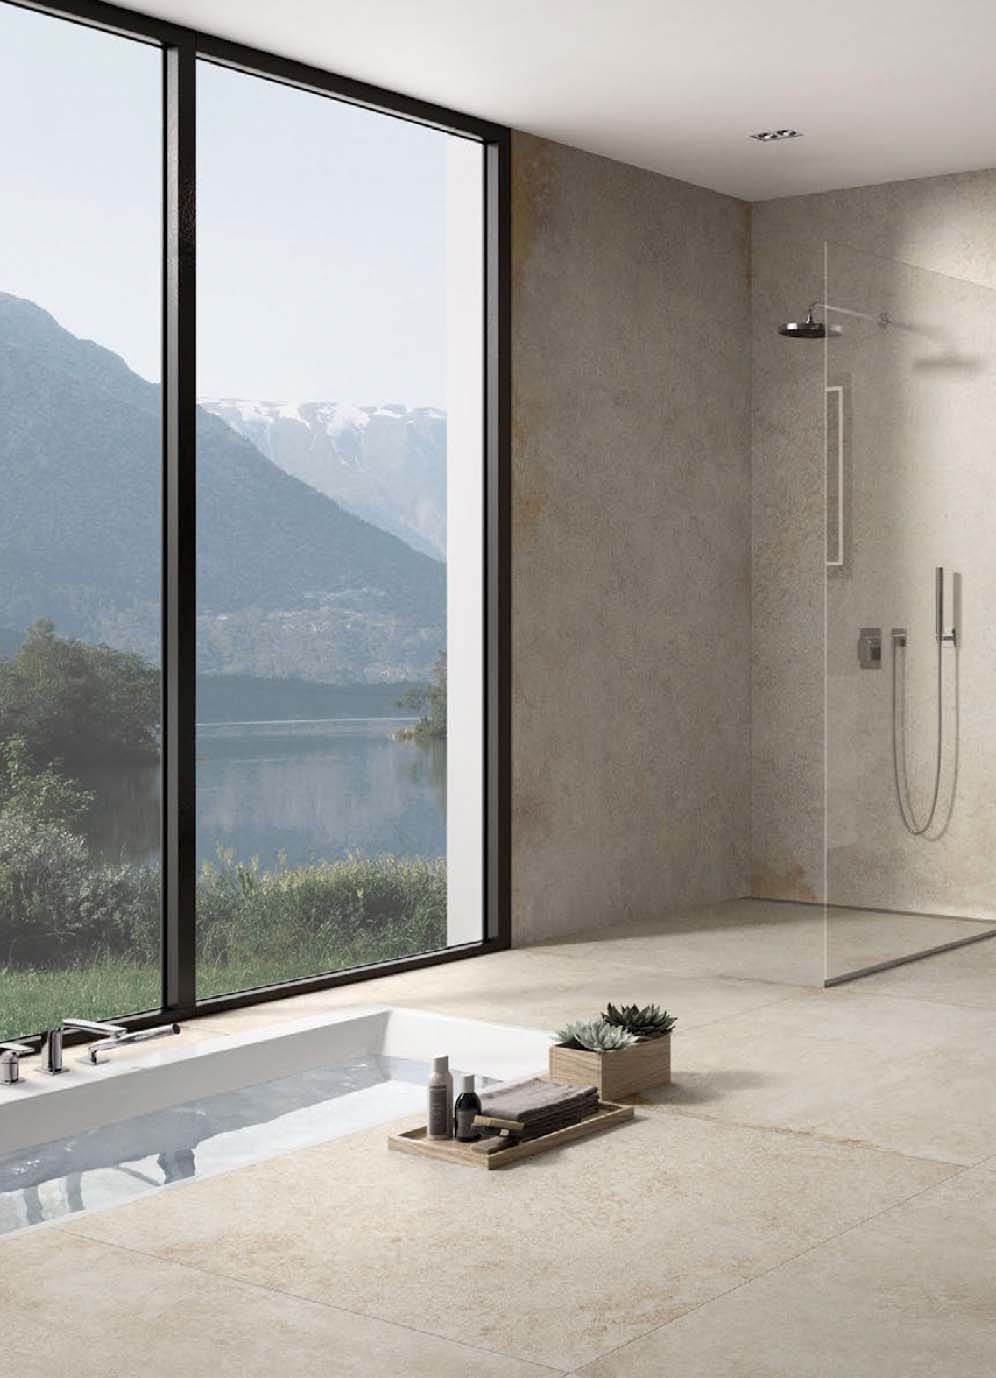 Tile Finishes From Villeroy & Boch